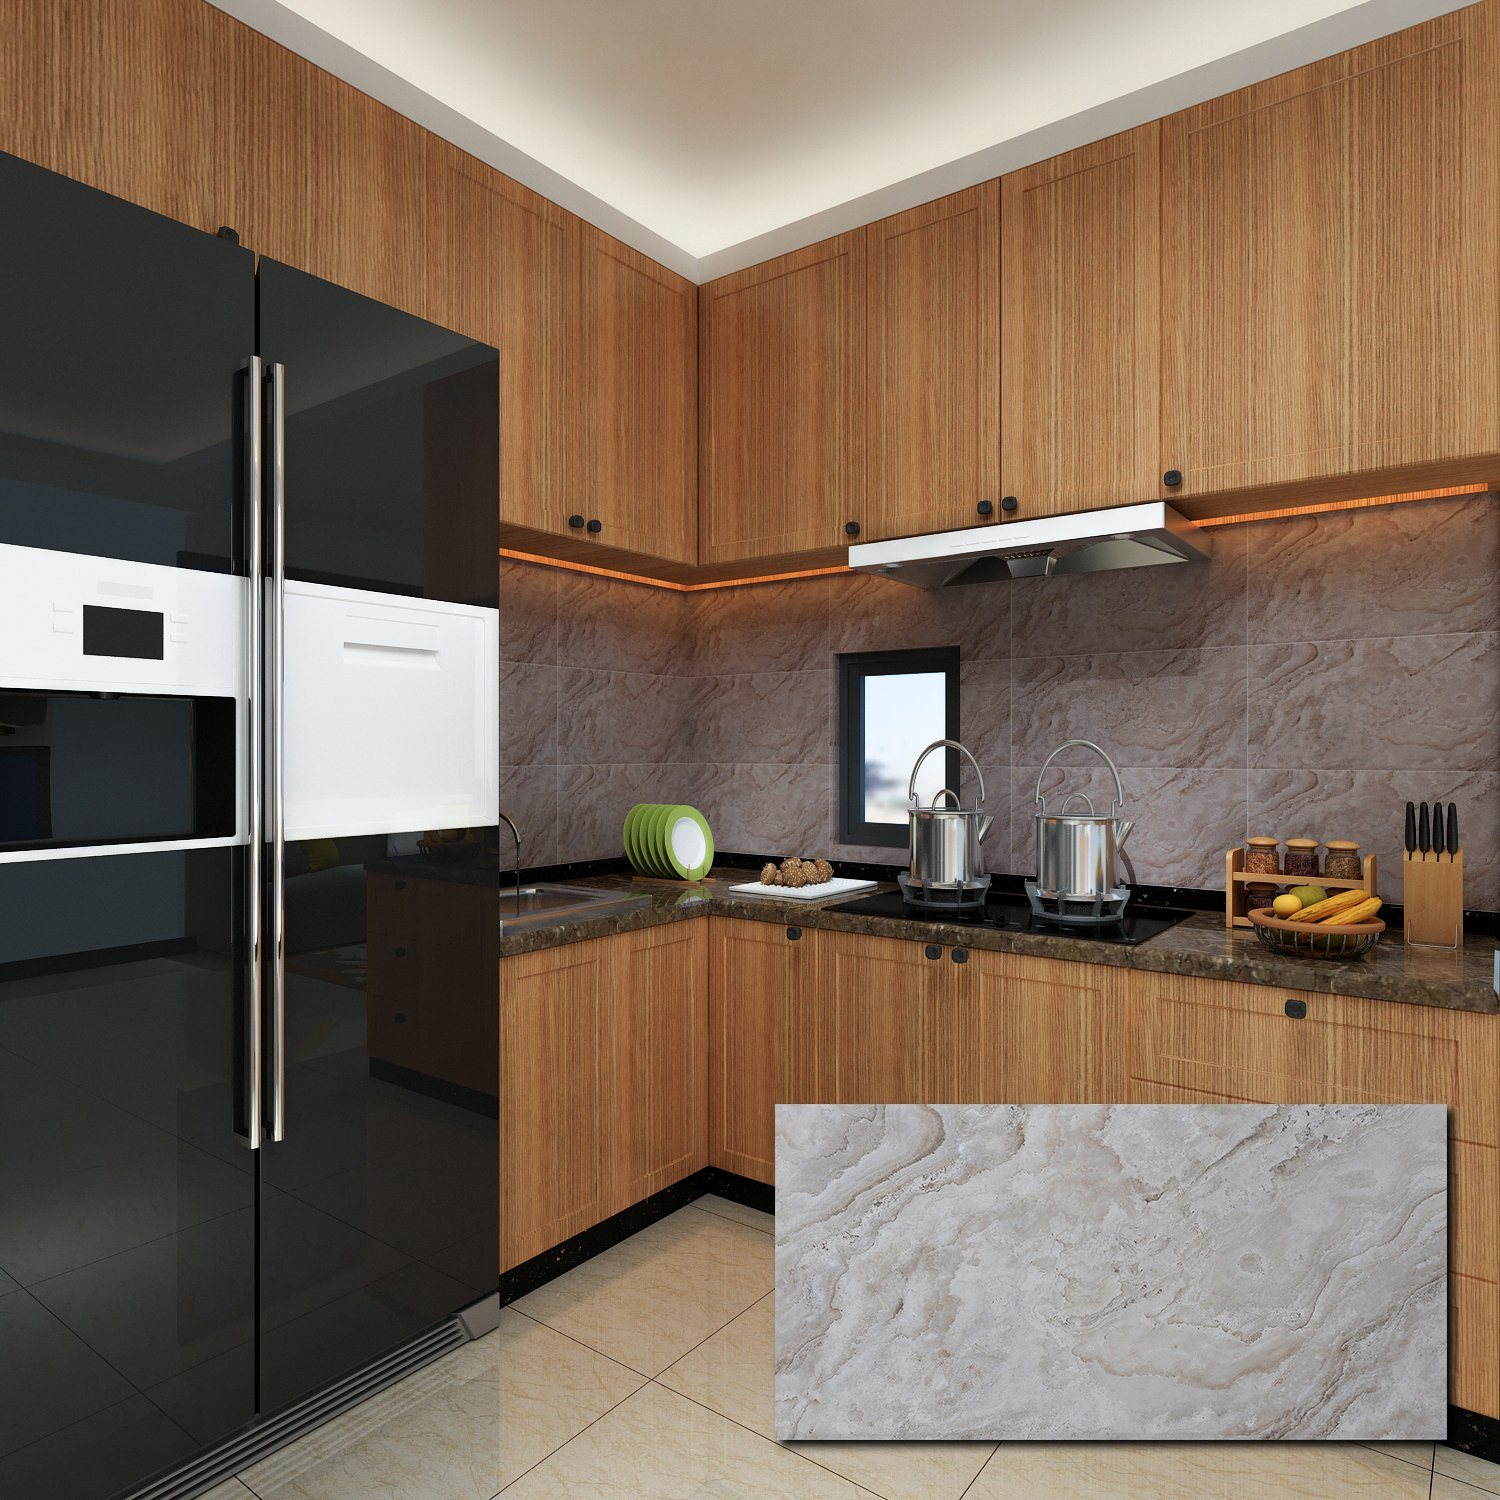 High End 9X9 Inch Kitchen Ceramic Wall Tile Designs   China ...